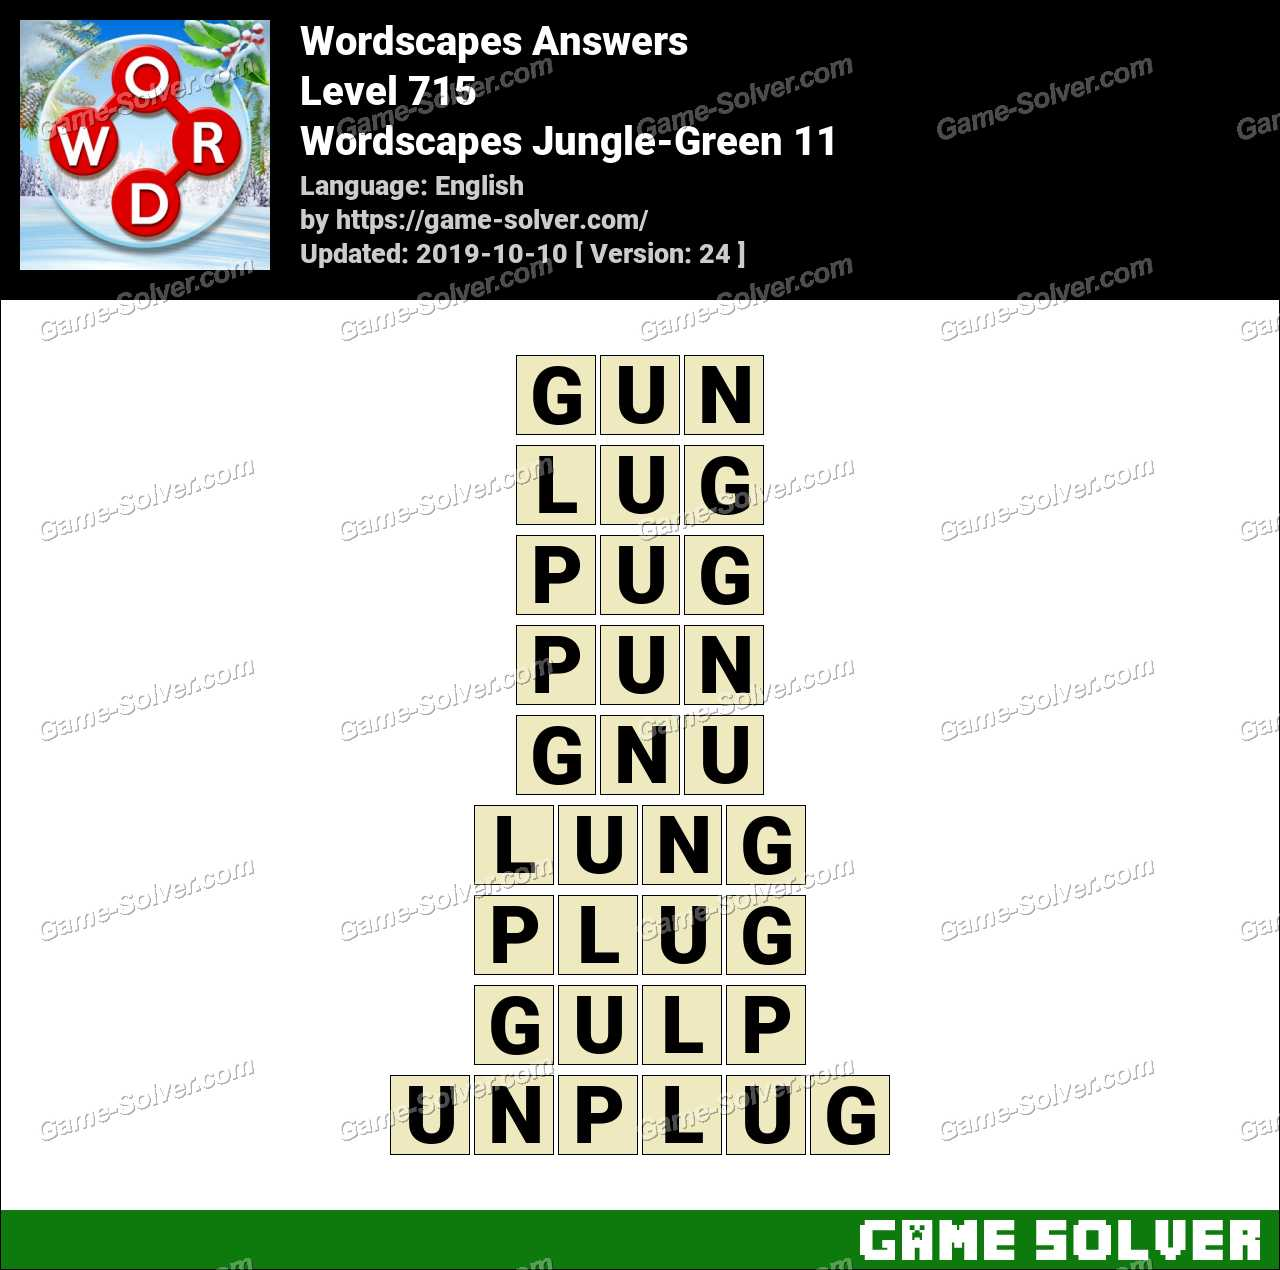 Wordscapes Jungle-Green 11 Answers